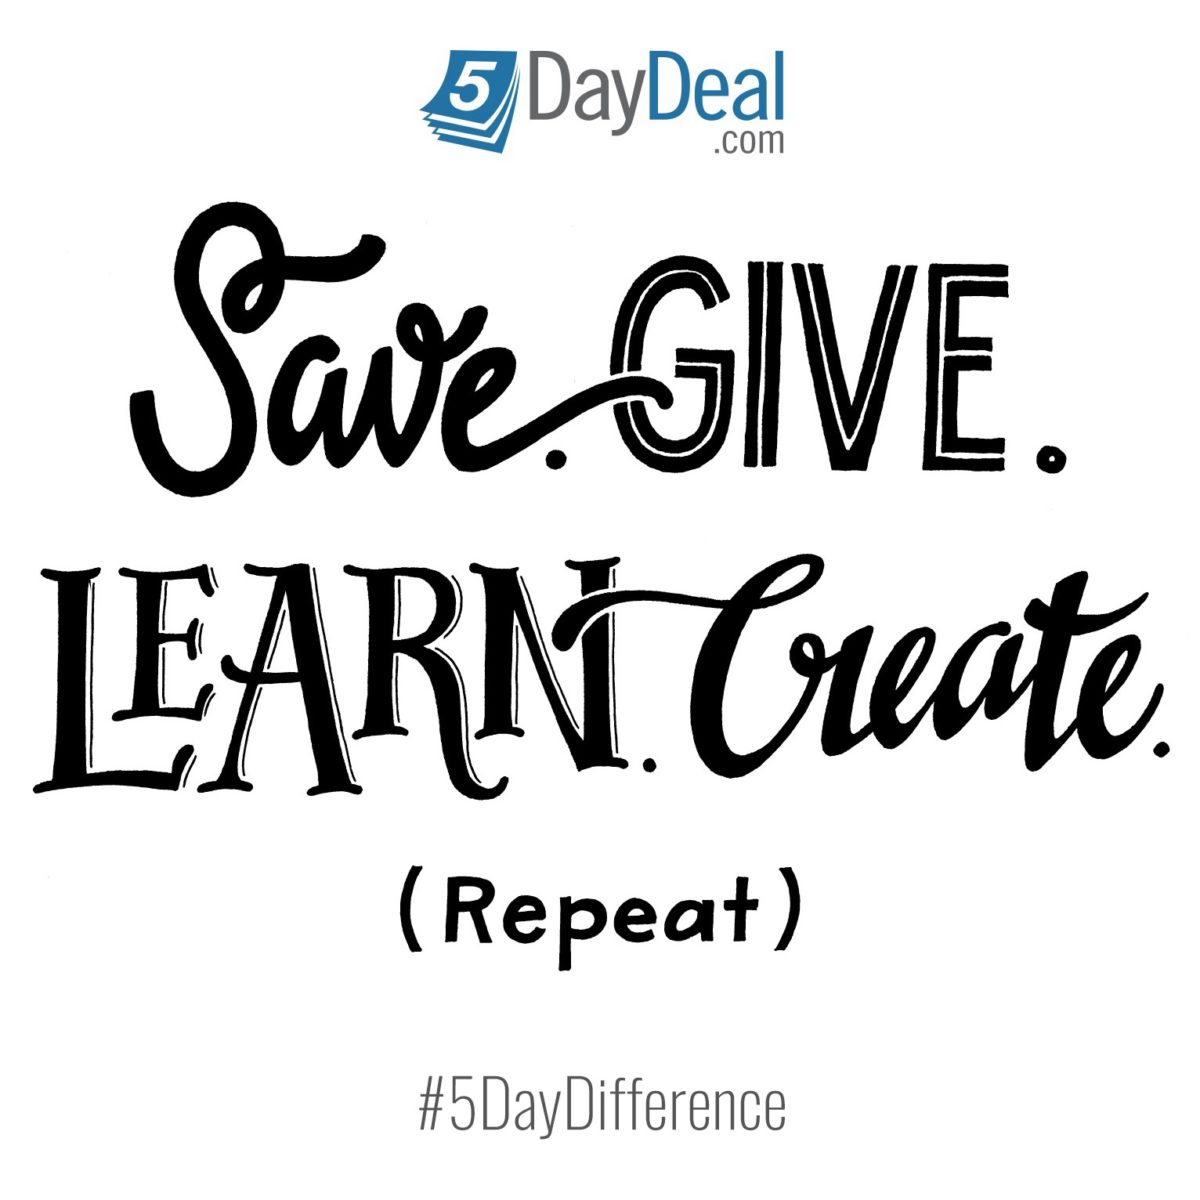 5daydeal-save-give_learn-create-repeate-logo